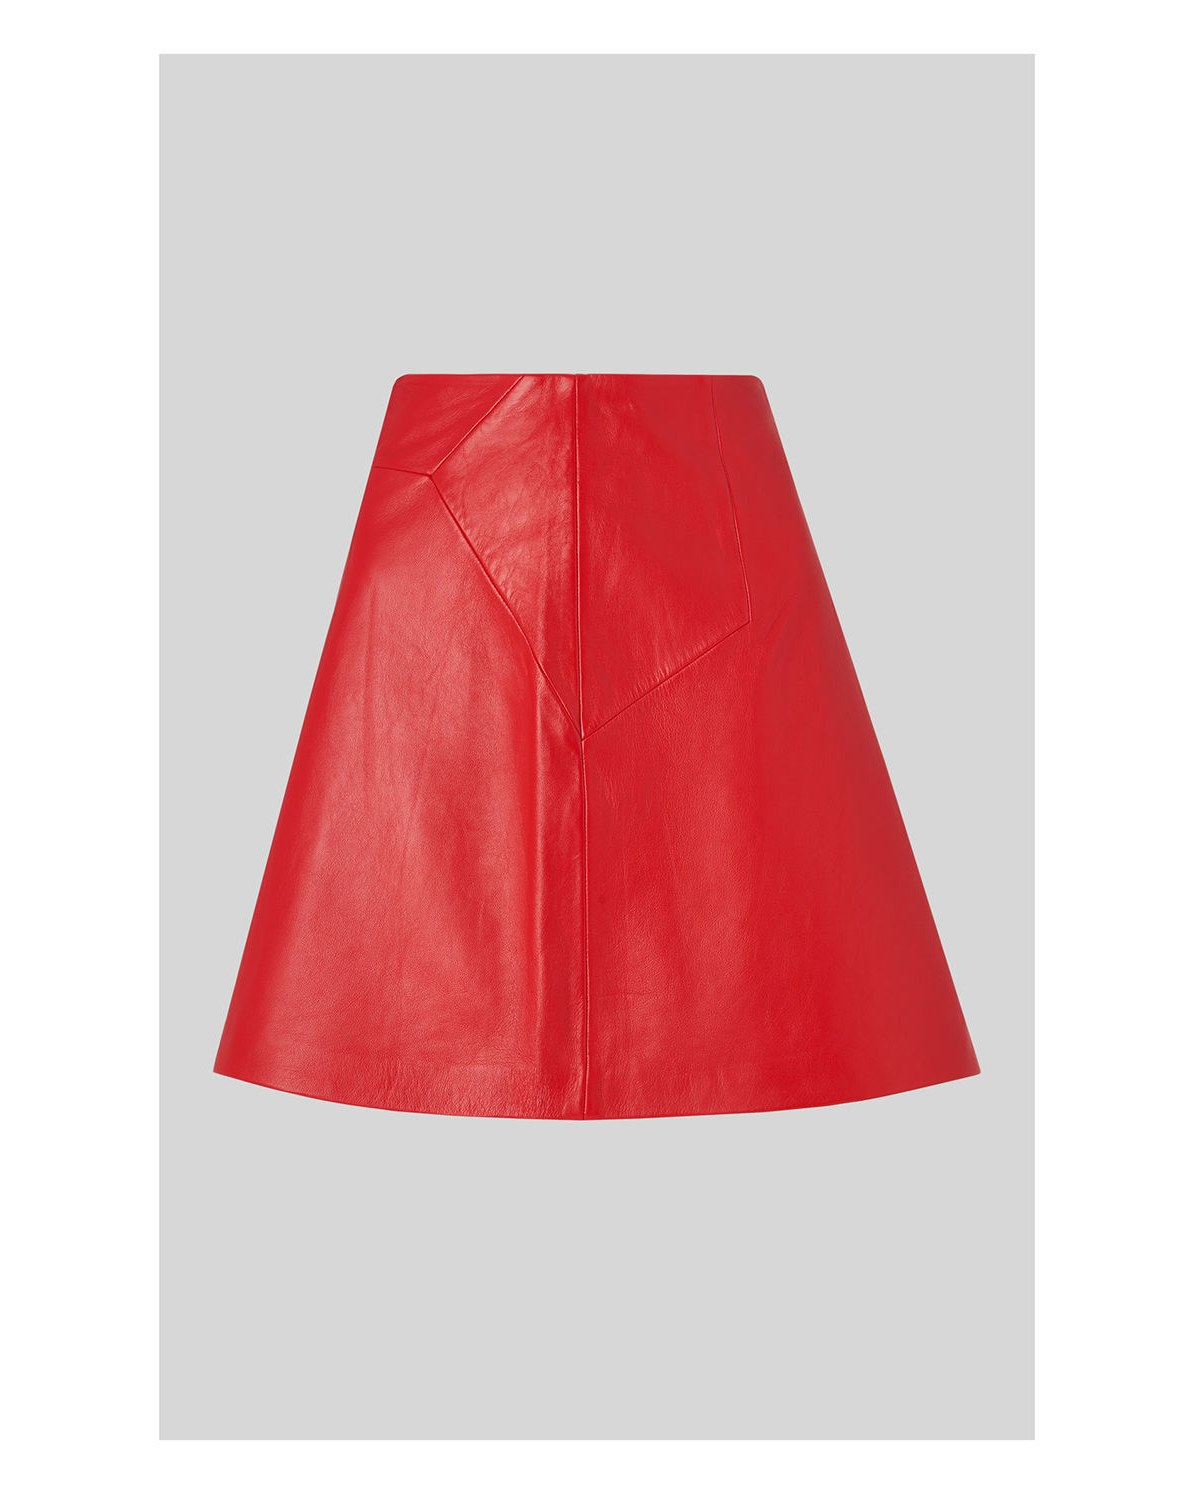 shop for genuine new arrivals exquisite style Leather A-Line Skirt